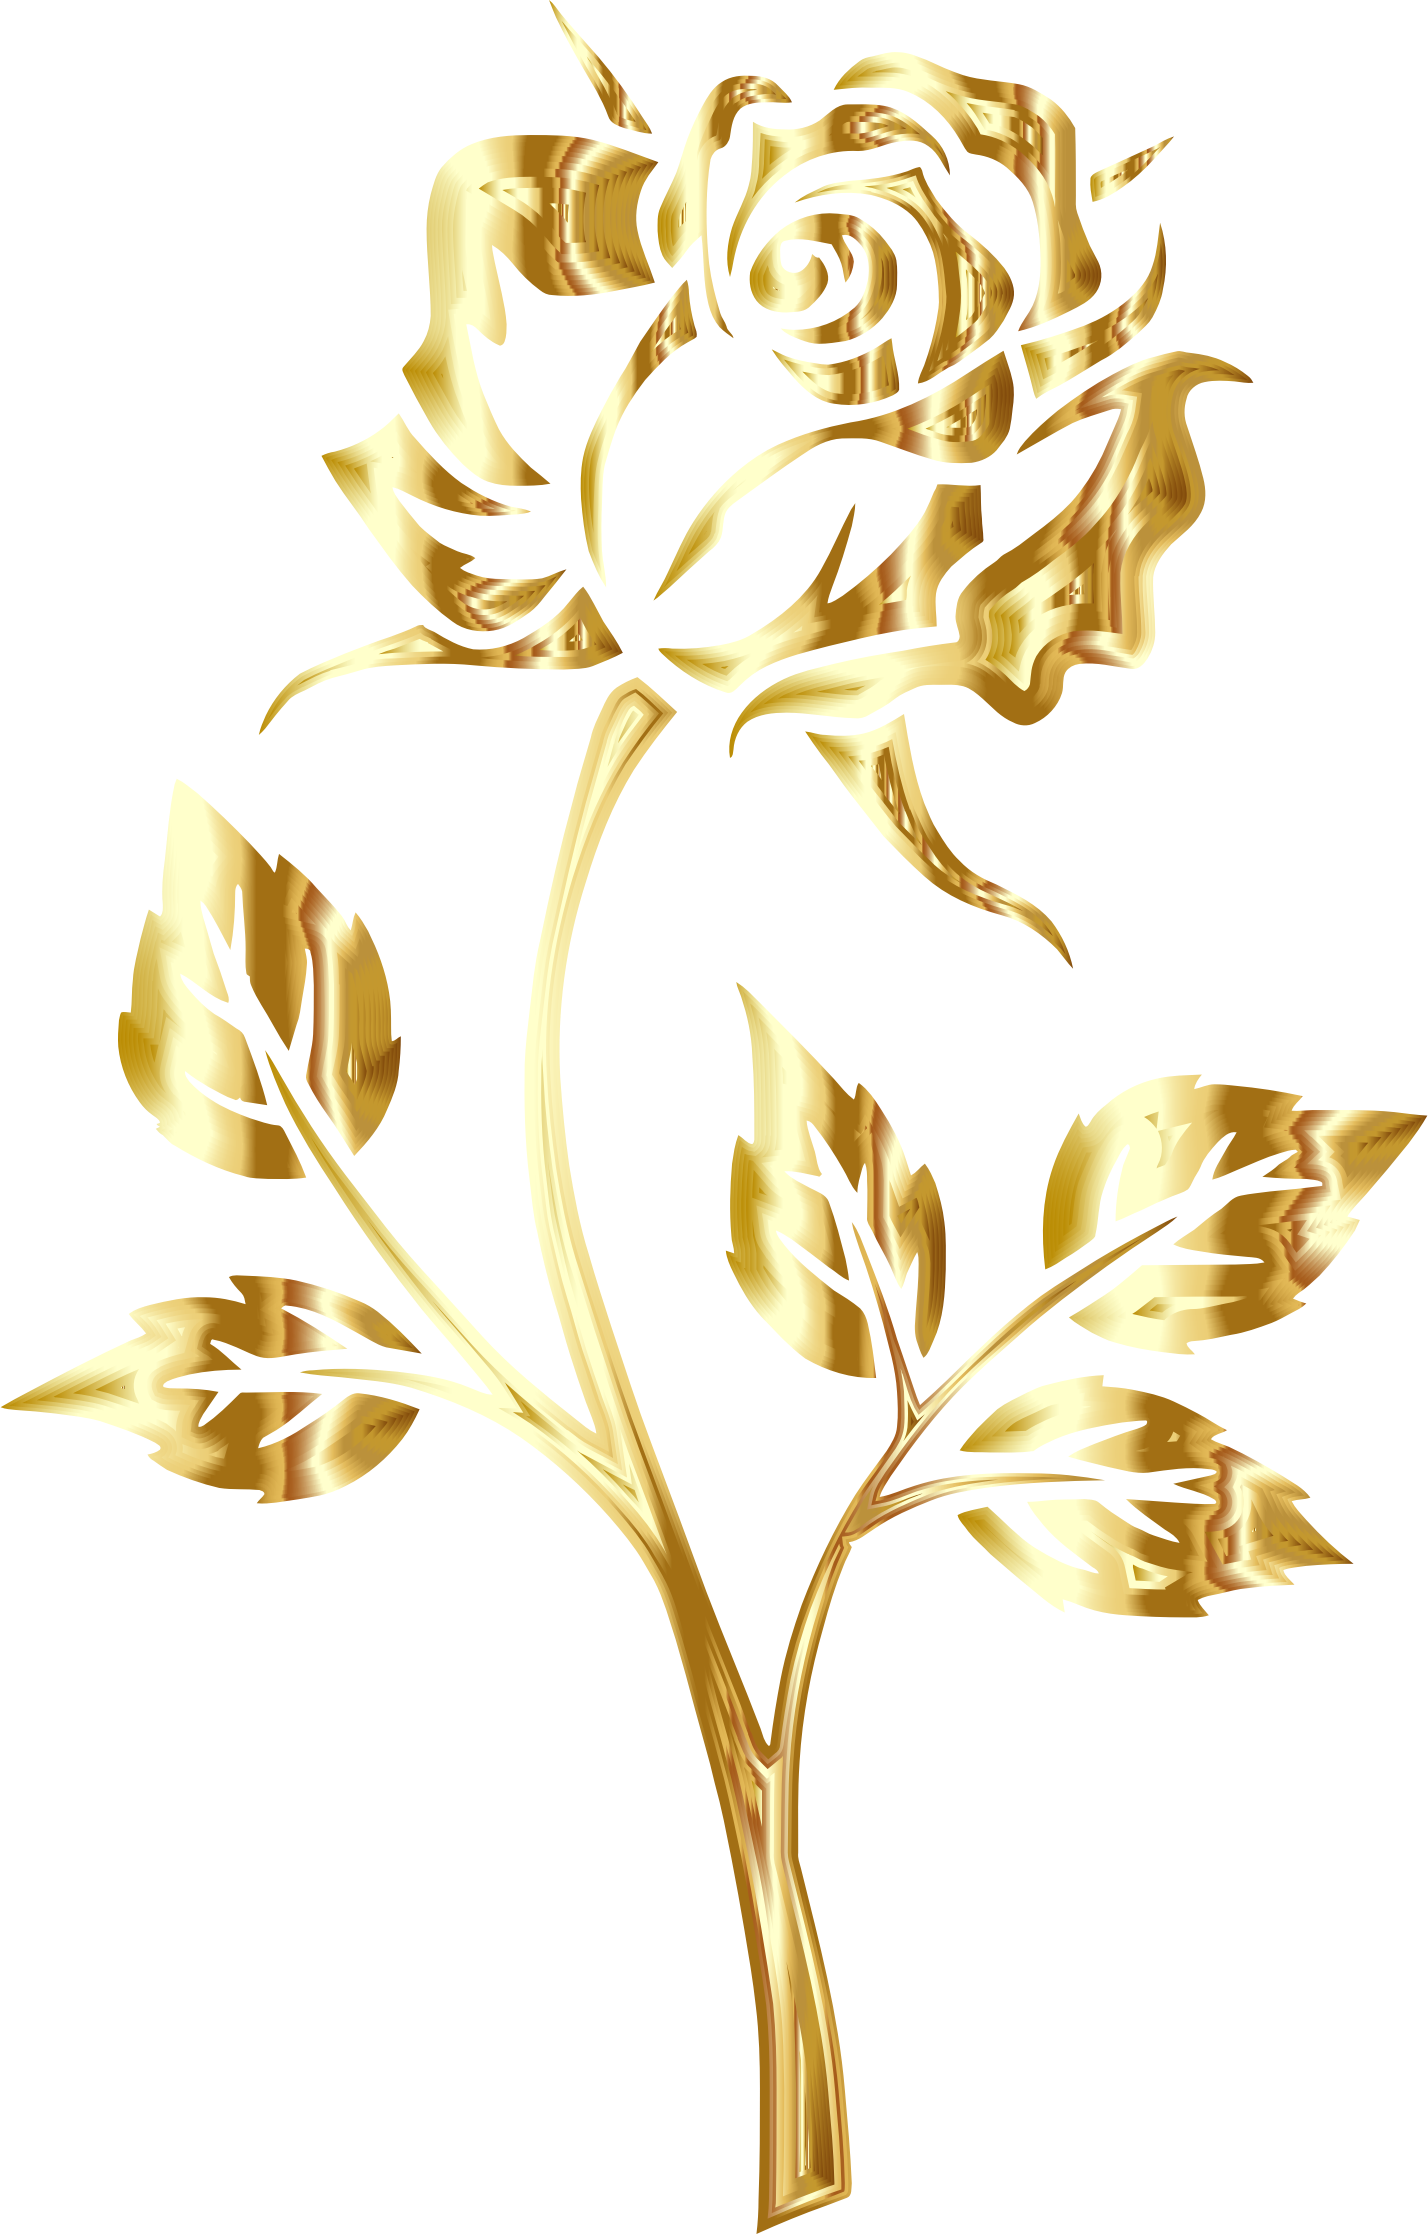 Gold rose png. Image golden no background